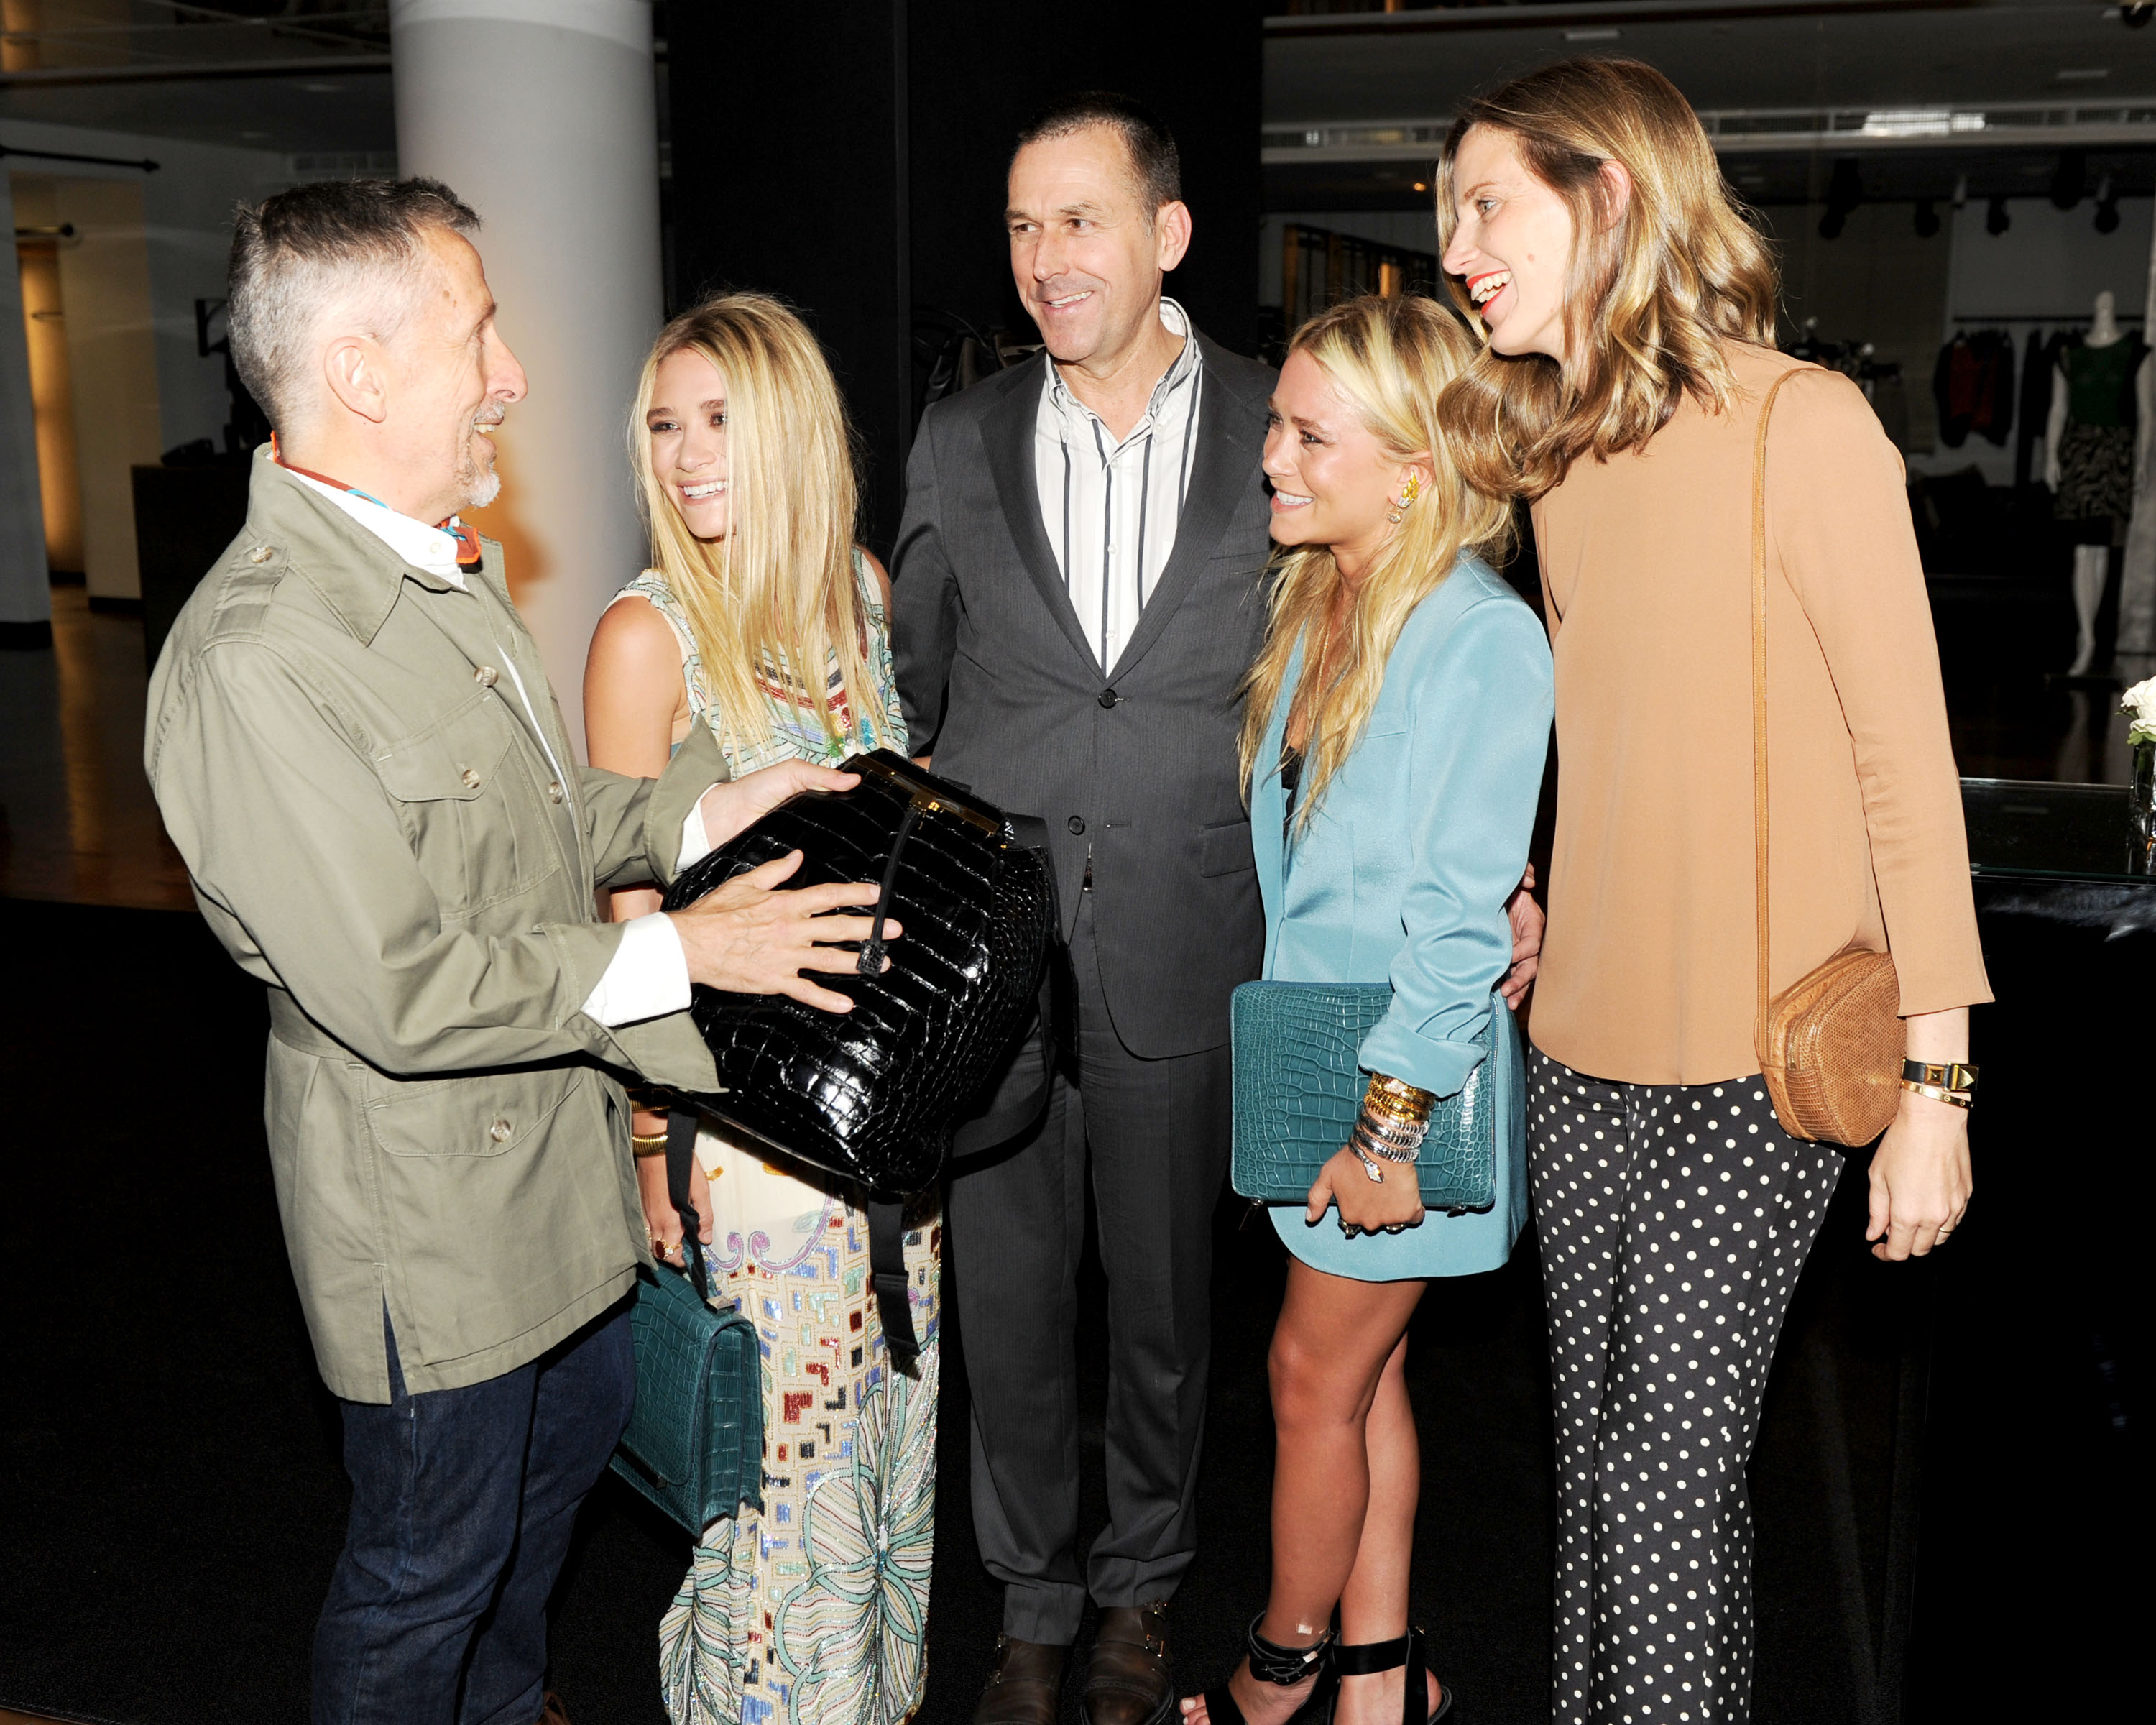 Simon Doonan, Ashley Olsen, Mark Lee, Mary-Kate Olsen, and Amanda Brooks together at Barneys for The Row's handbags.